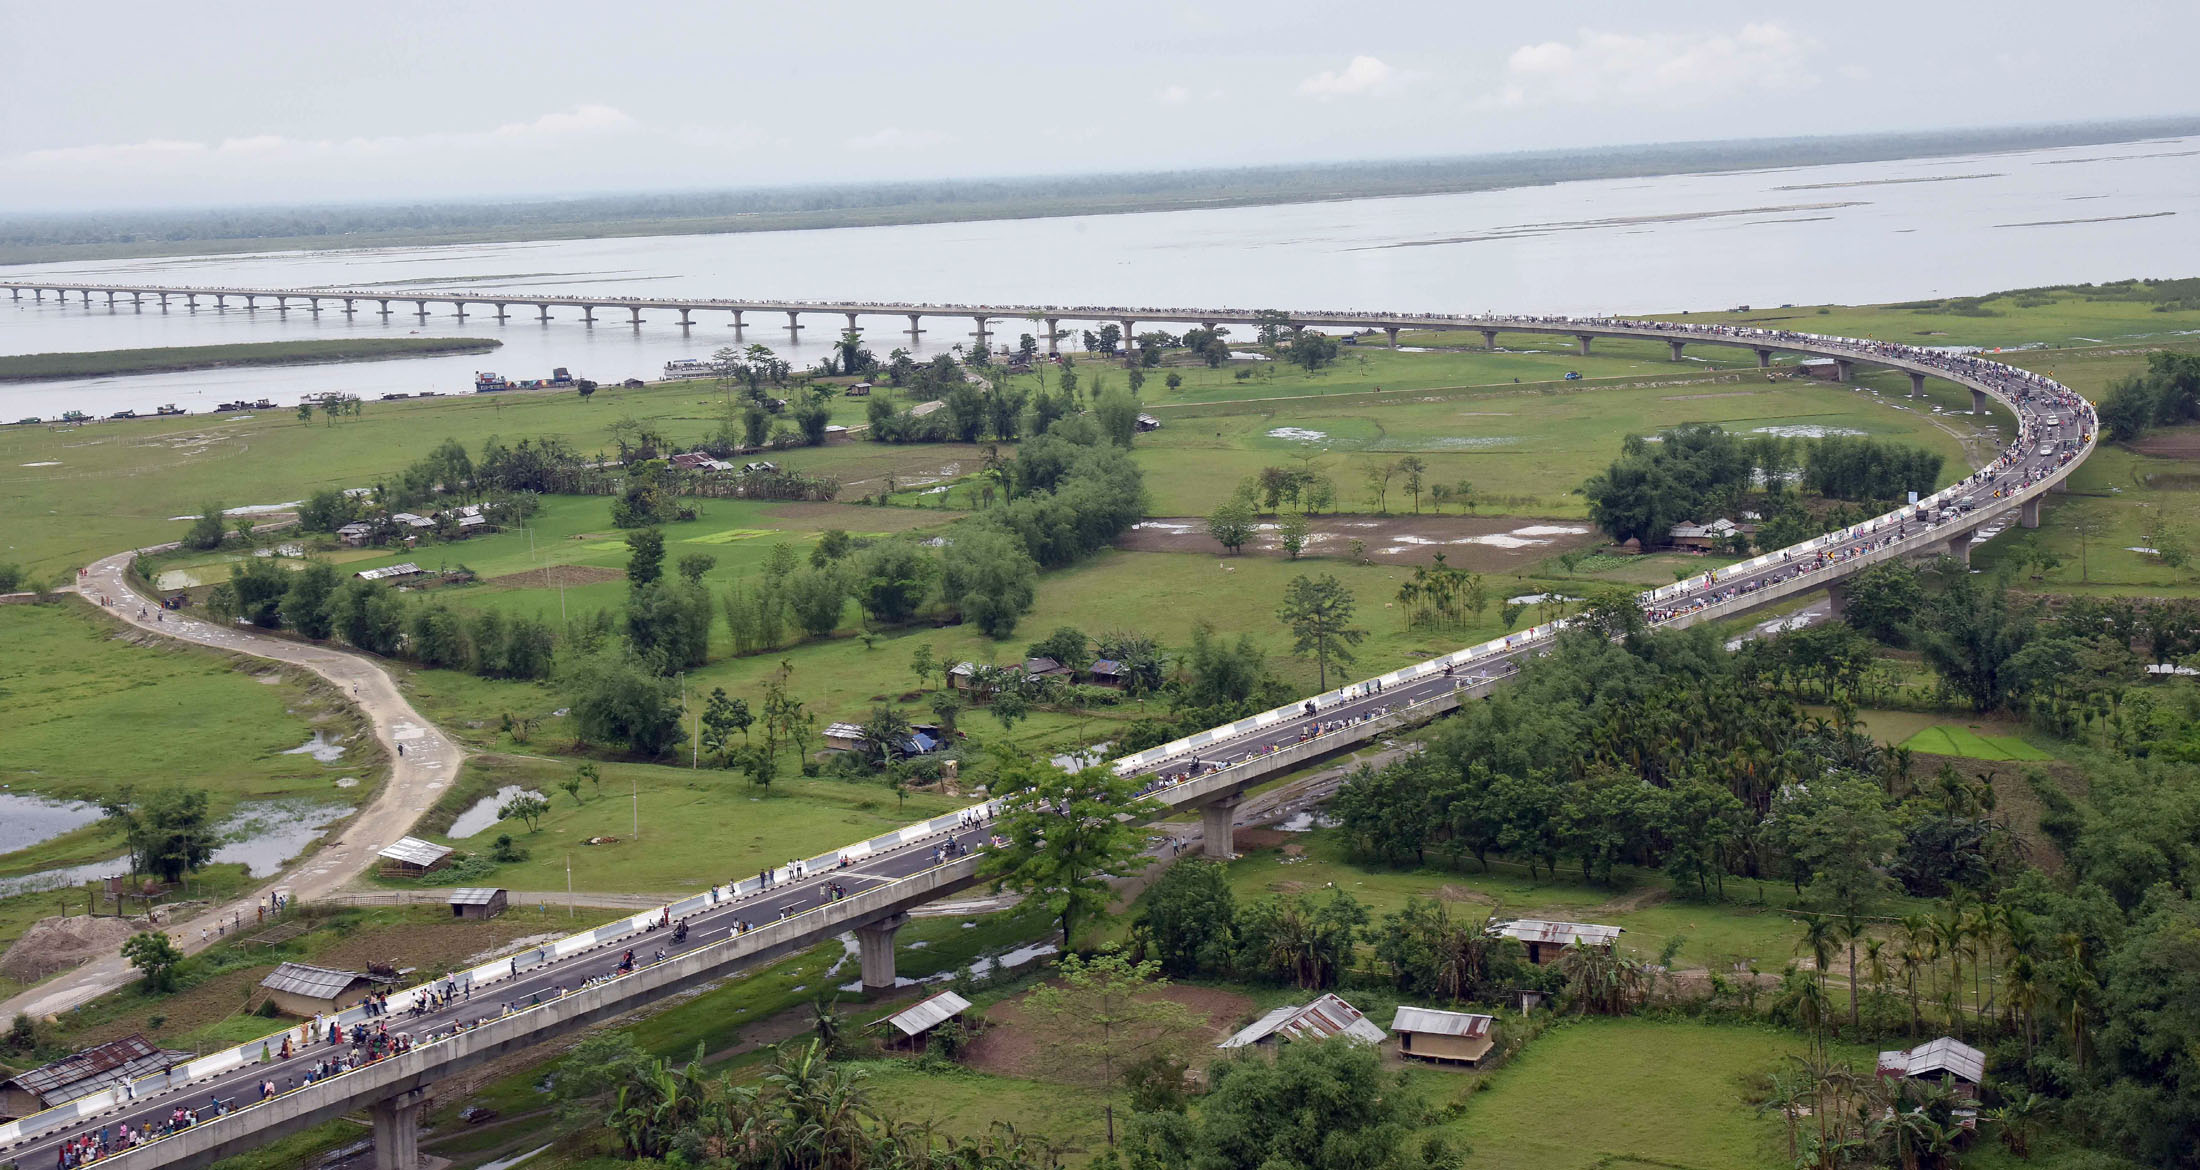 India is fast-tracking roads network projects in the Northeast. An aerial view of the Dhola-Sadiya bridge across River Brahmaputra, inaugurated by Prime Minister Narendra Modi, in Assam on May 26, 2017. The bridge cuts down military movement time to the border apart from its economic benefits for the region.